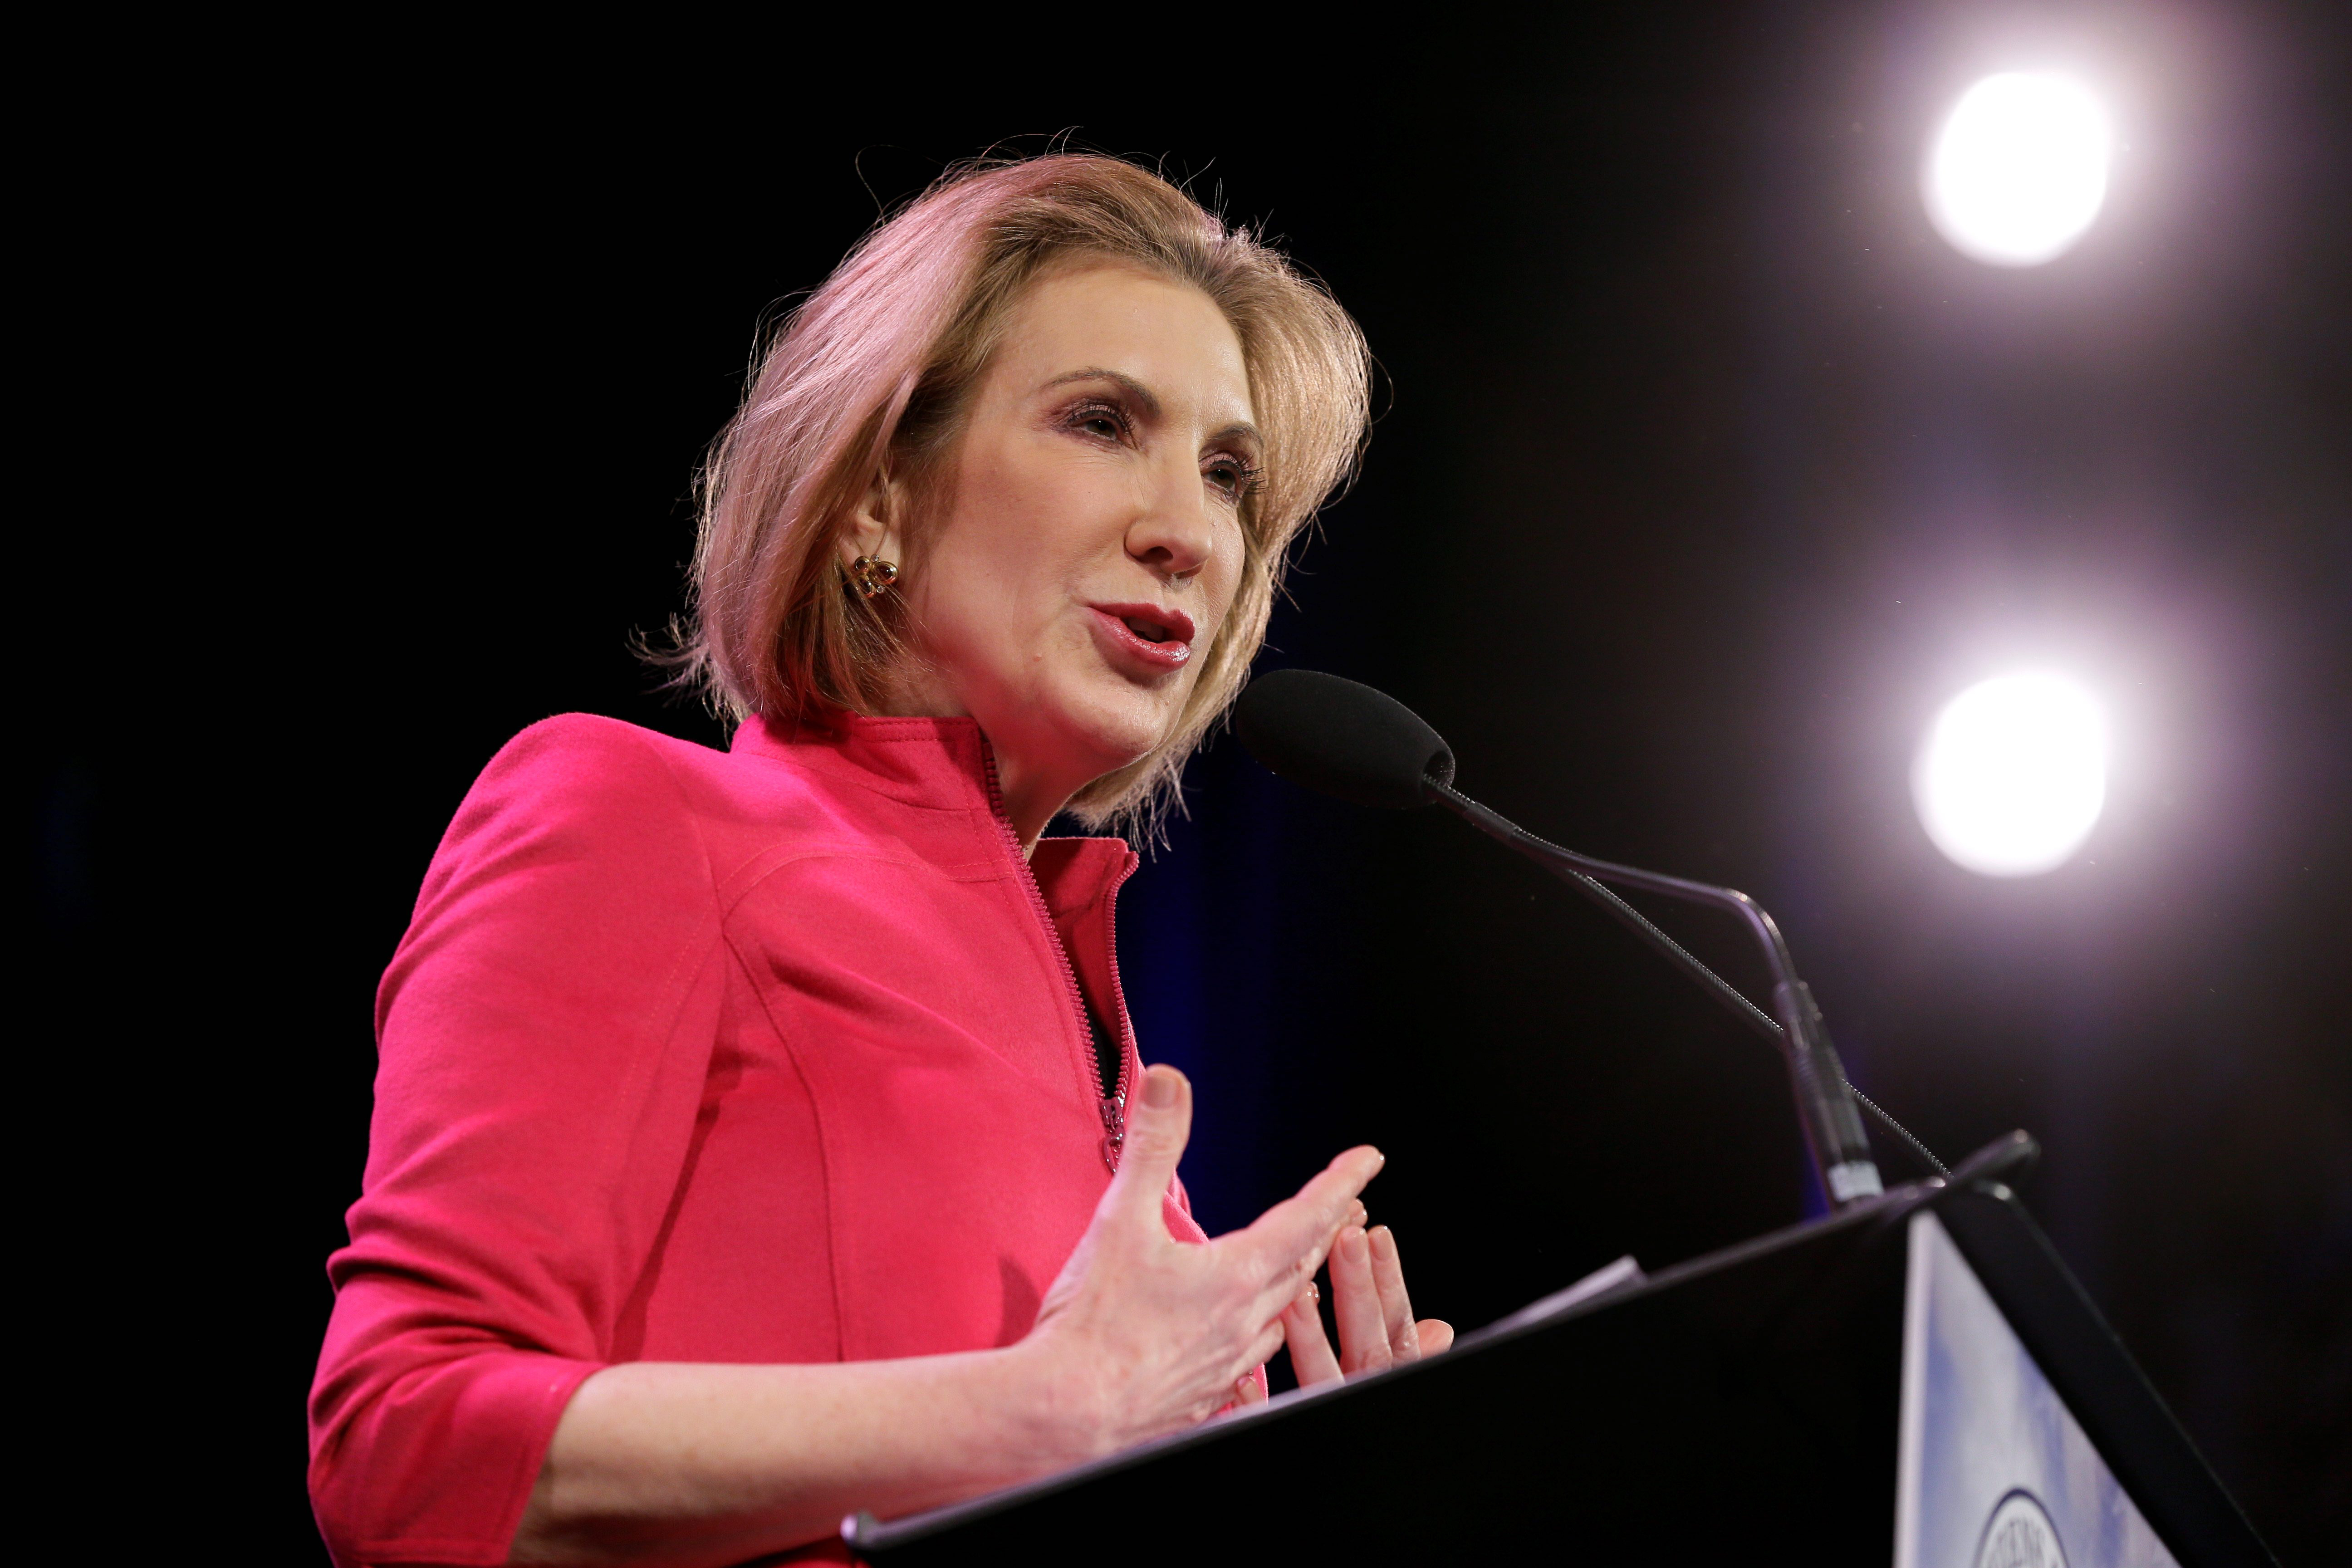 Carly Fiorina Aims To Smash Politics' Glass Ceiling